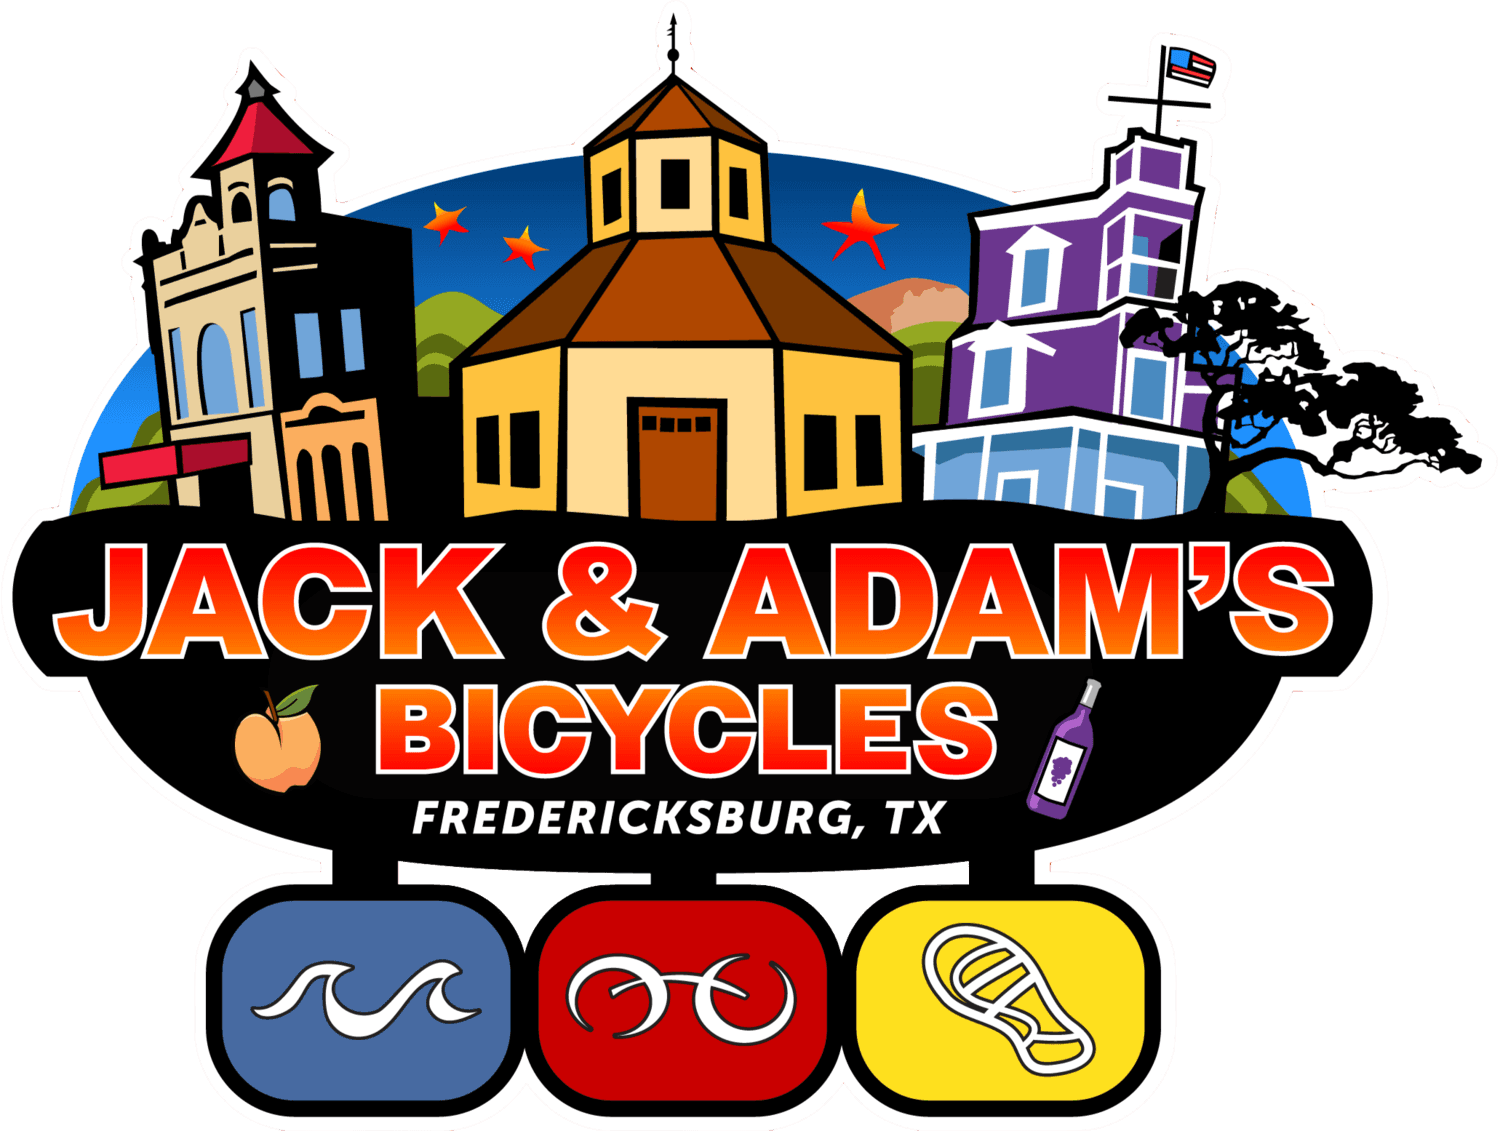 Jack and Adam's Bicycles in Fredericksburg Texas